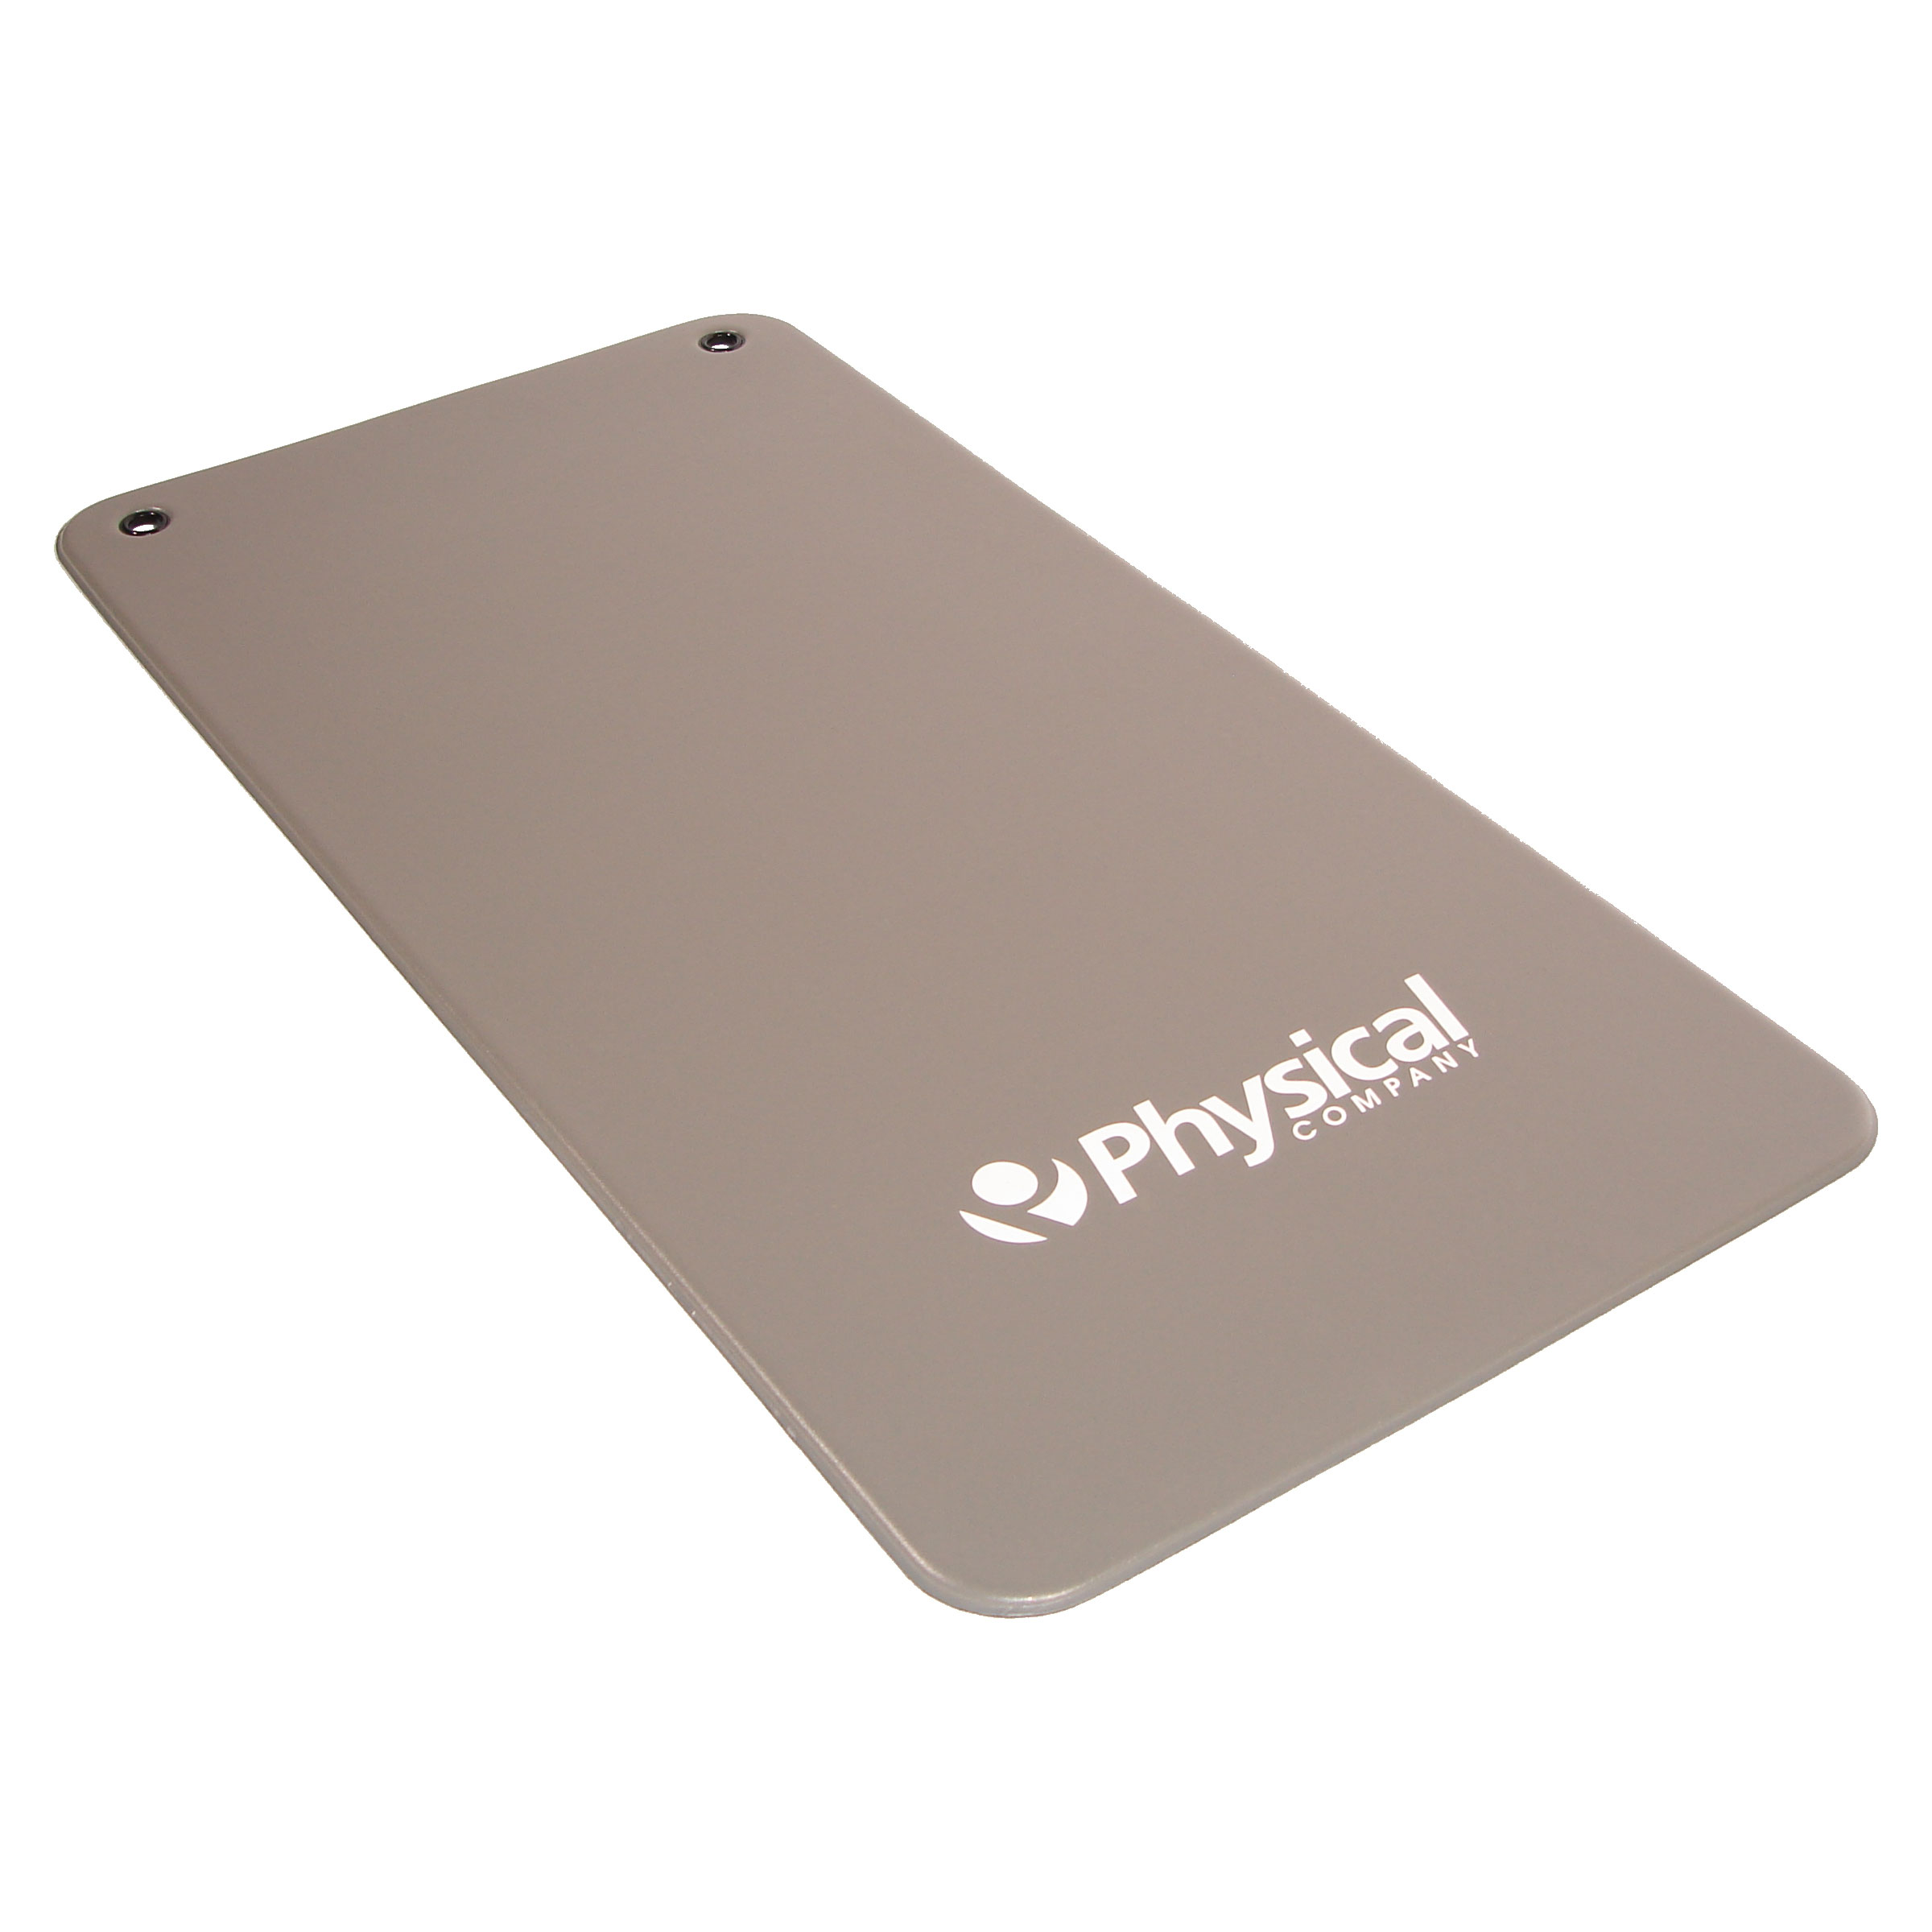 9.5mm Vinyl Exercise Mat - Grey (With Eyelets)